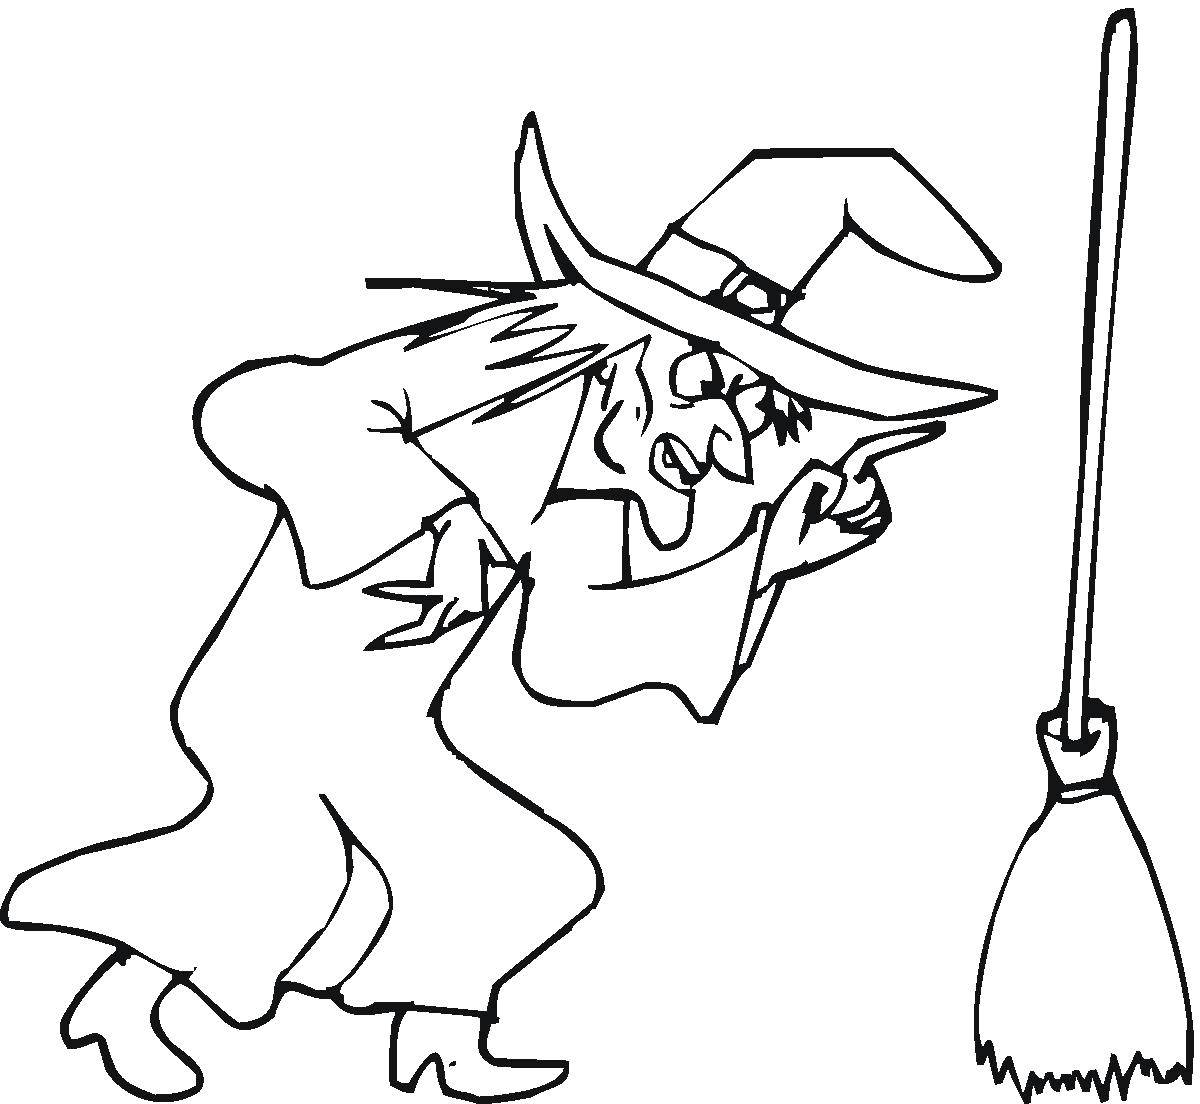 Coloring sheet witch Download dog, pop-corn.  Print ,Pets allowed,